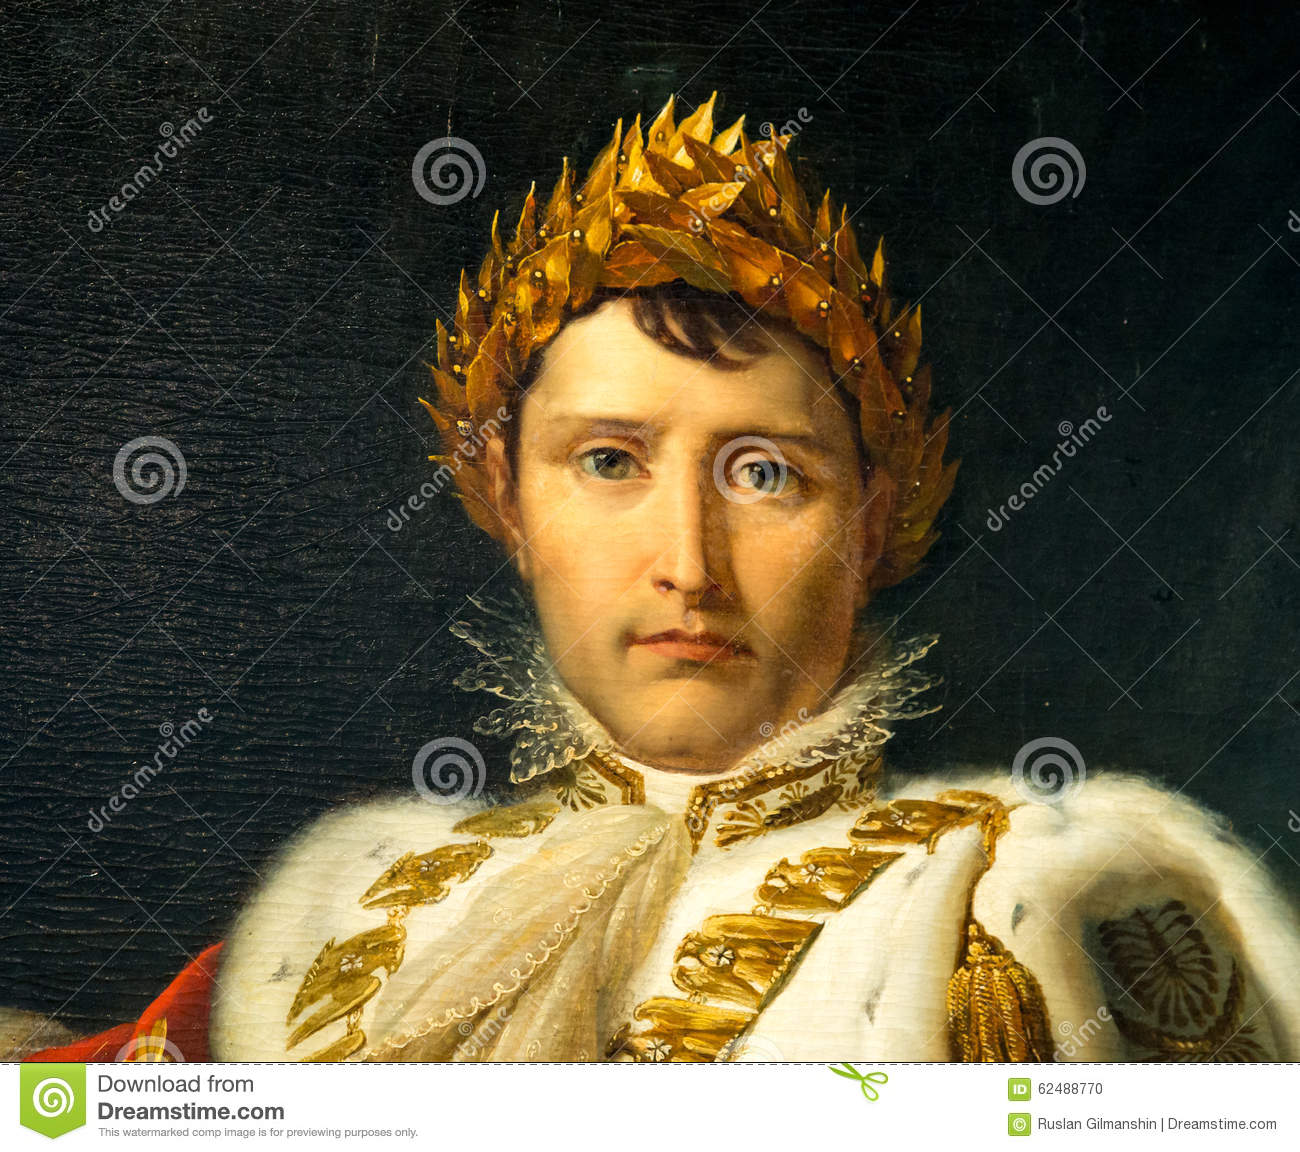 an overview of the life and achievements of napoleon bonaparte May-october, 1792:  hile in paris with his regiment, napoleon witnesses the storming of the tuileries palace and the dethroning of the french king, louis xvi.